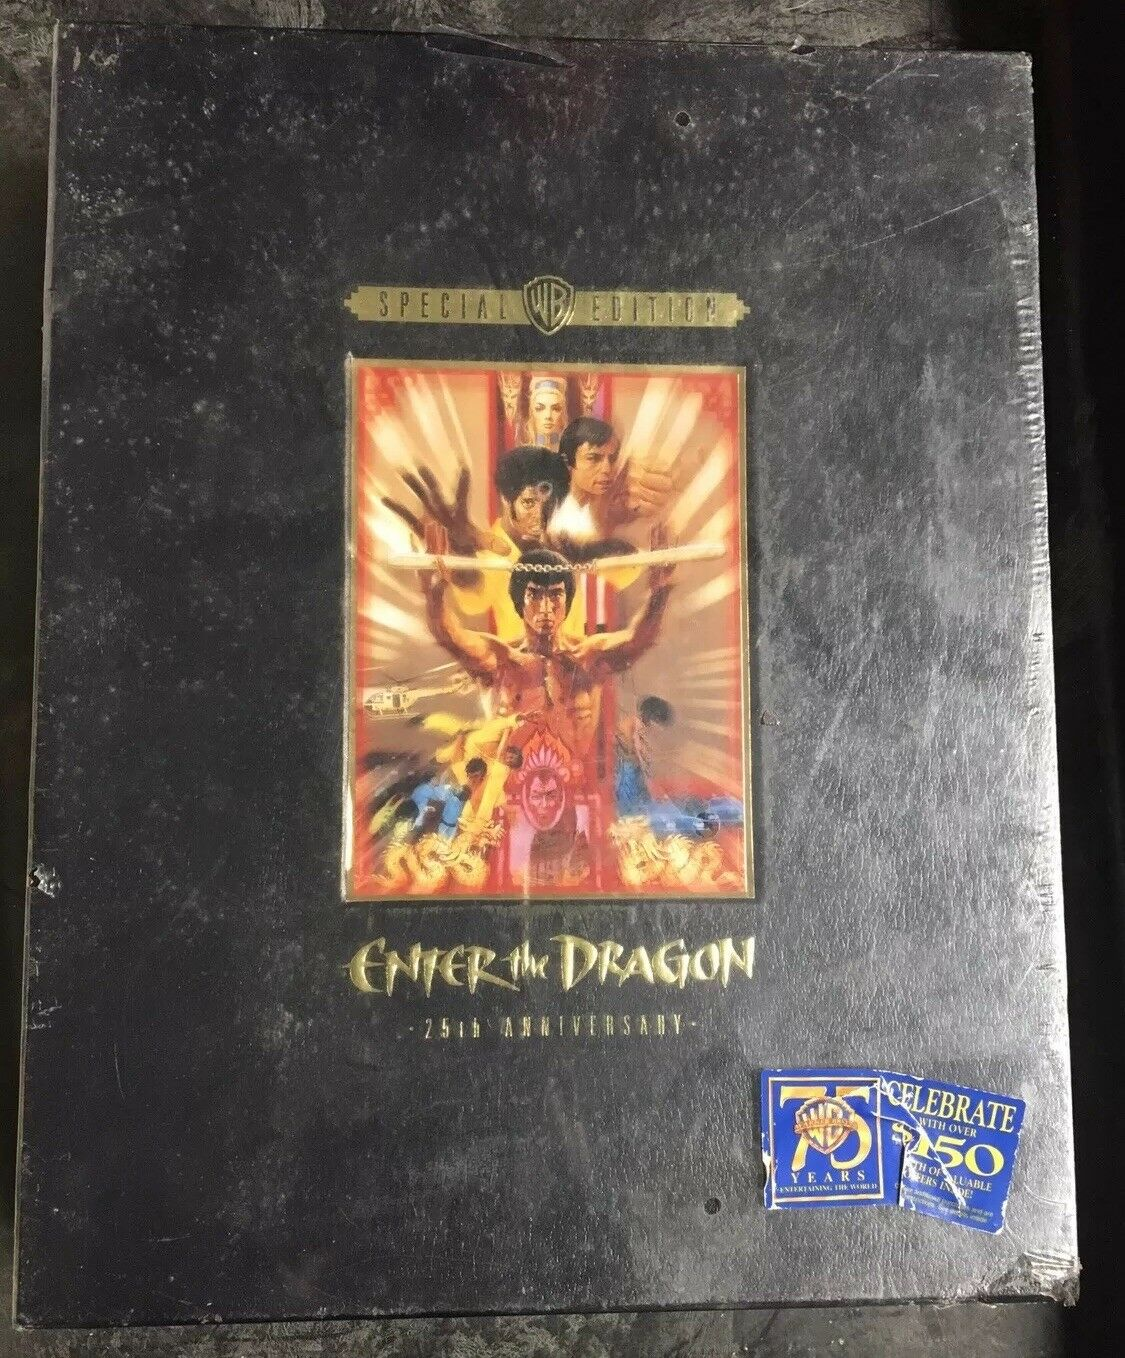 Brand New Special Edition Enter the Dragon 25th Anniversary (VHS,1998) Bruce Lee